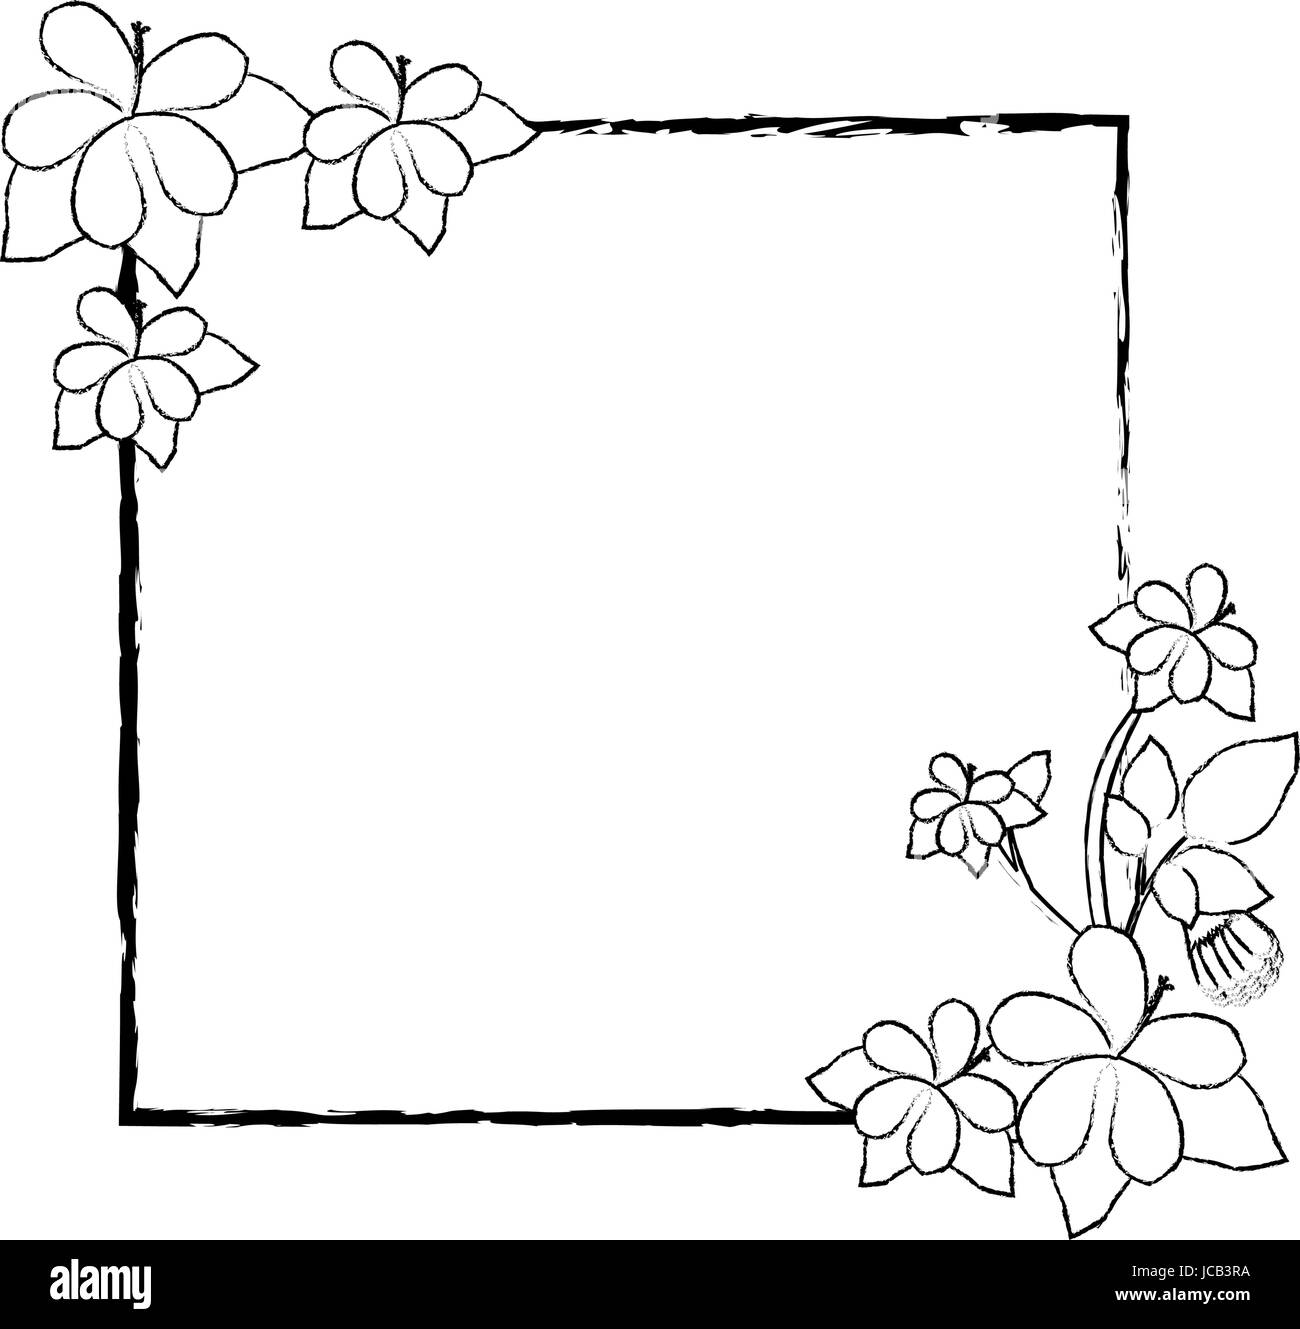 Flower frame black white square stock vector images alamy frame with flowers stock vector mightylinksfo